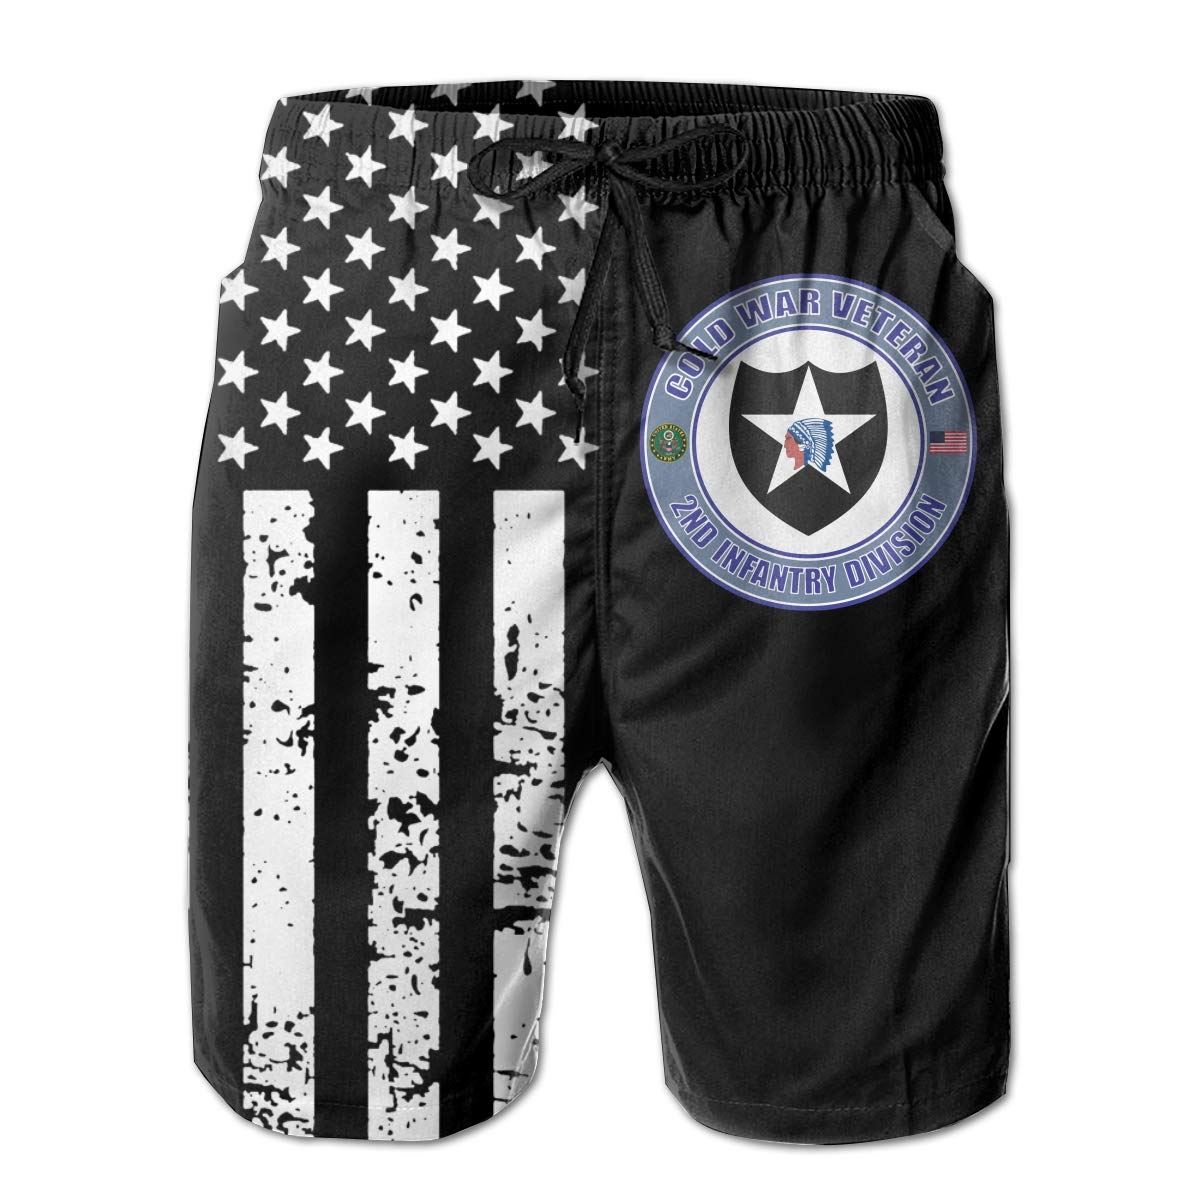 U.S Army Cold War 2nd Infantry Division Veteran Mens Quick Dry Swim Trunks with Pocket Drawstring